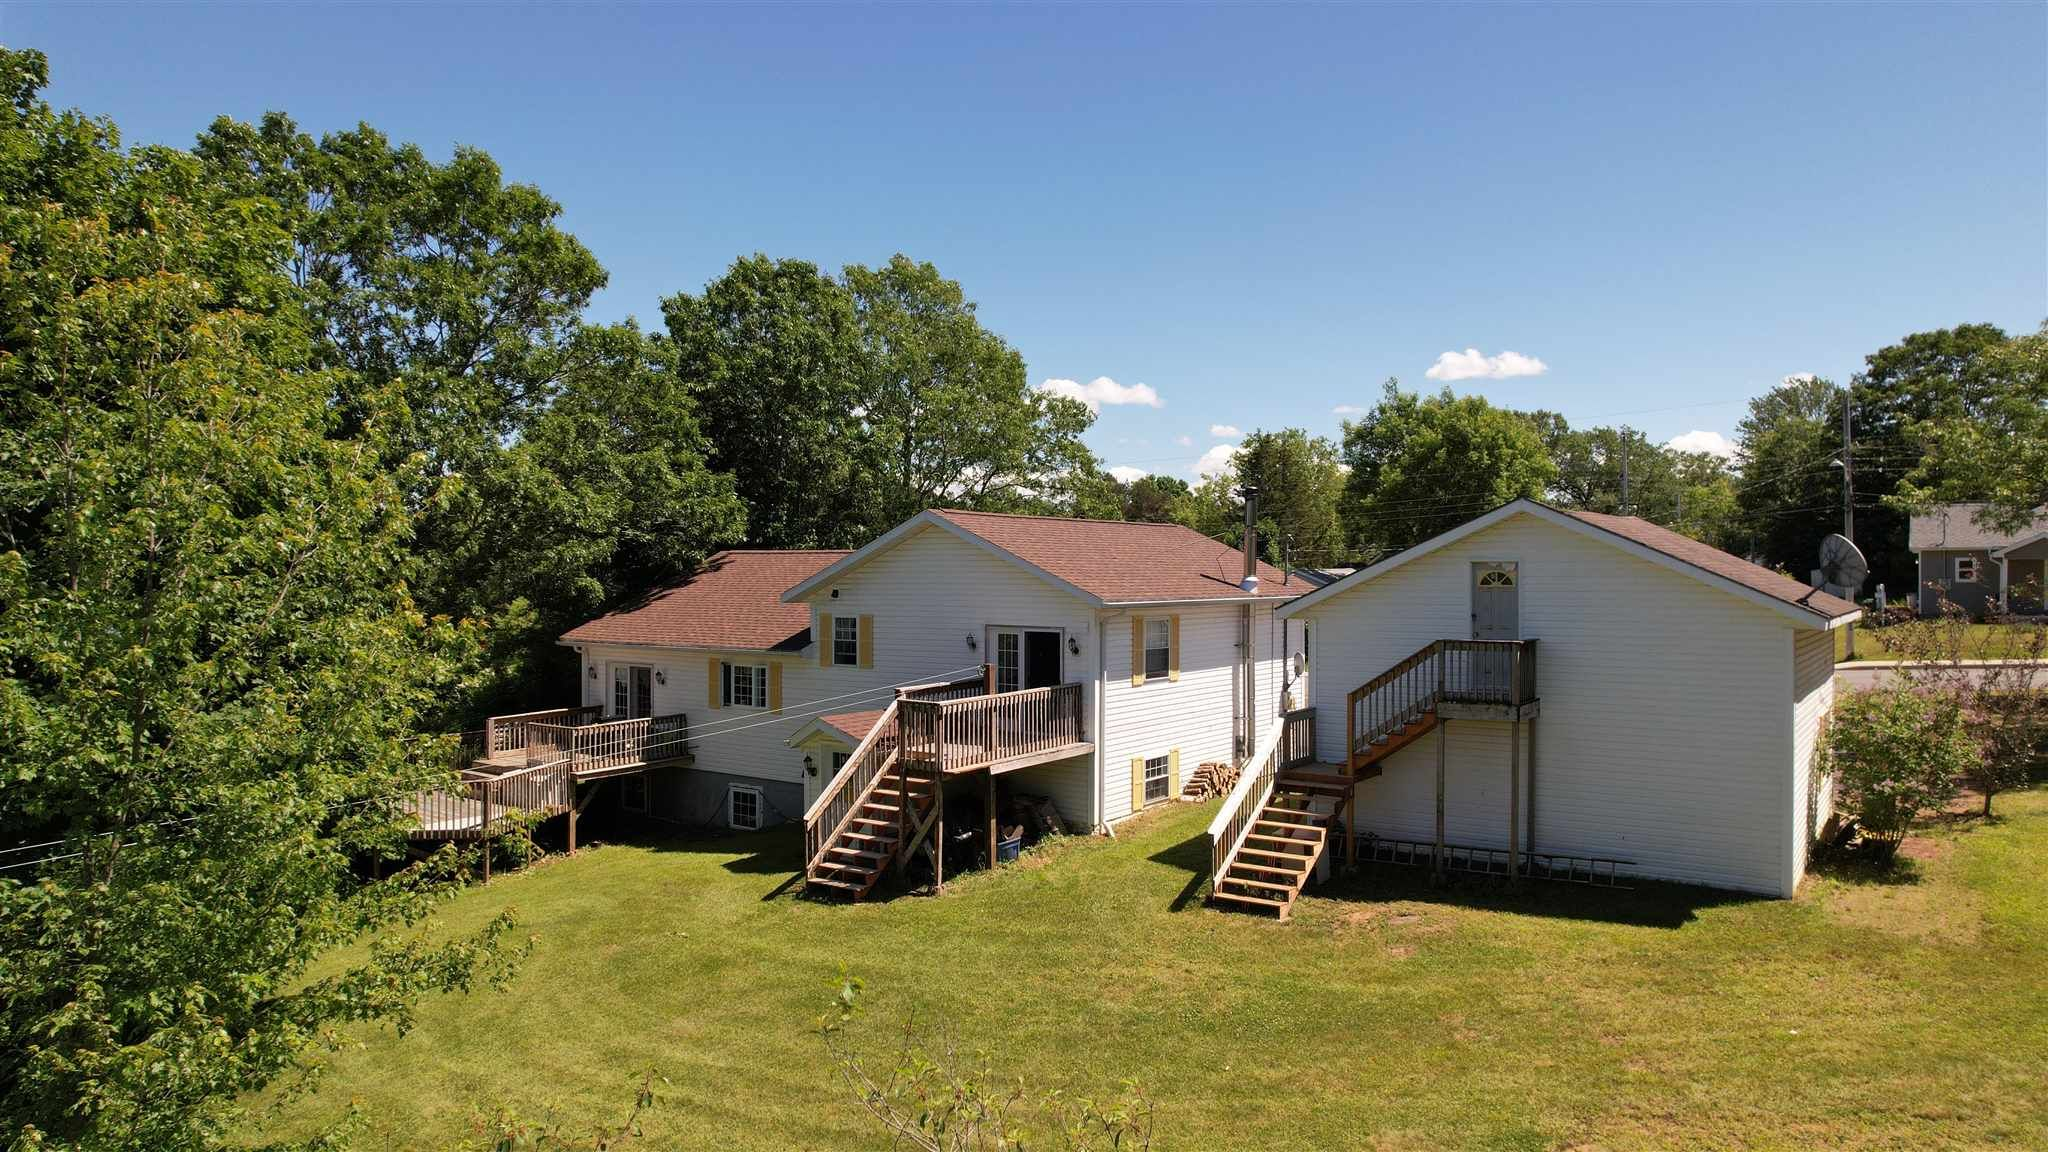 Photo 24: Photos: 1130 McKittrick Road in North Kentville: 404-Kings County Residential for sale (Annapolis Valley)  : MLS®# 202110448